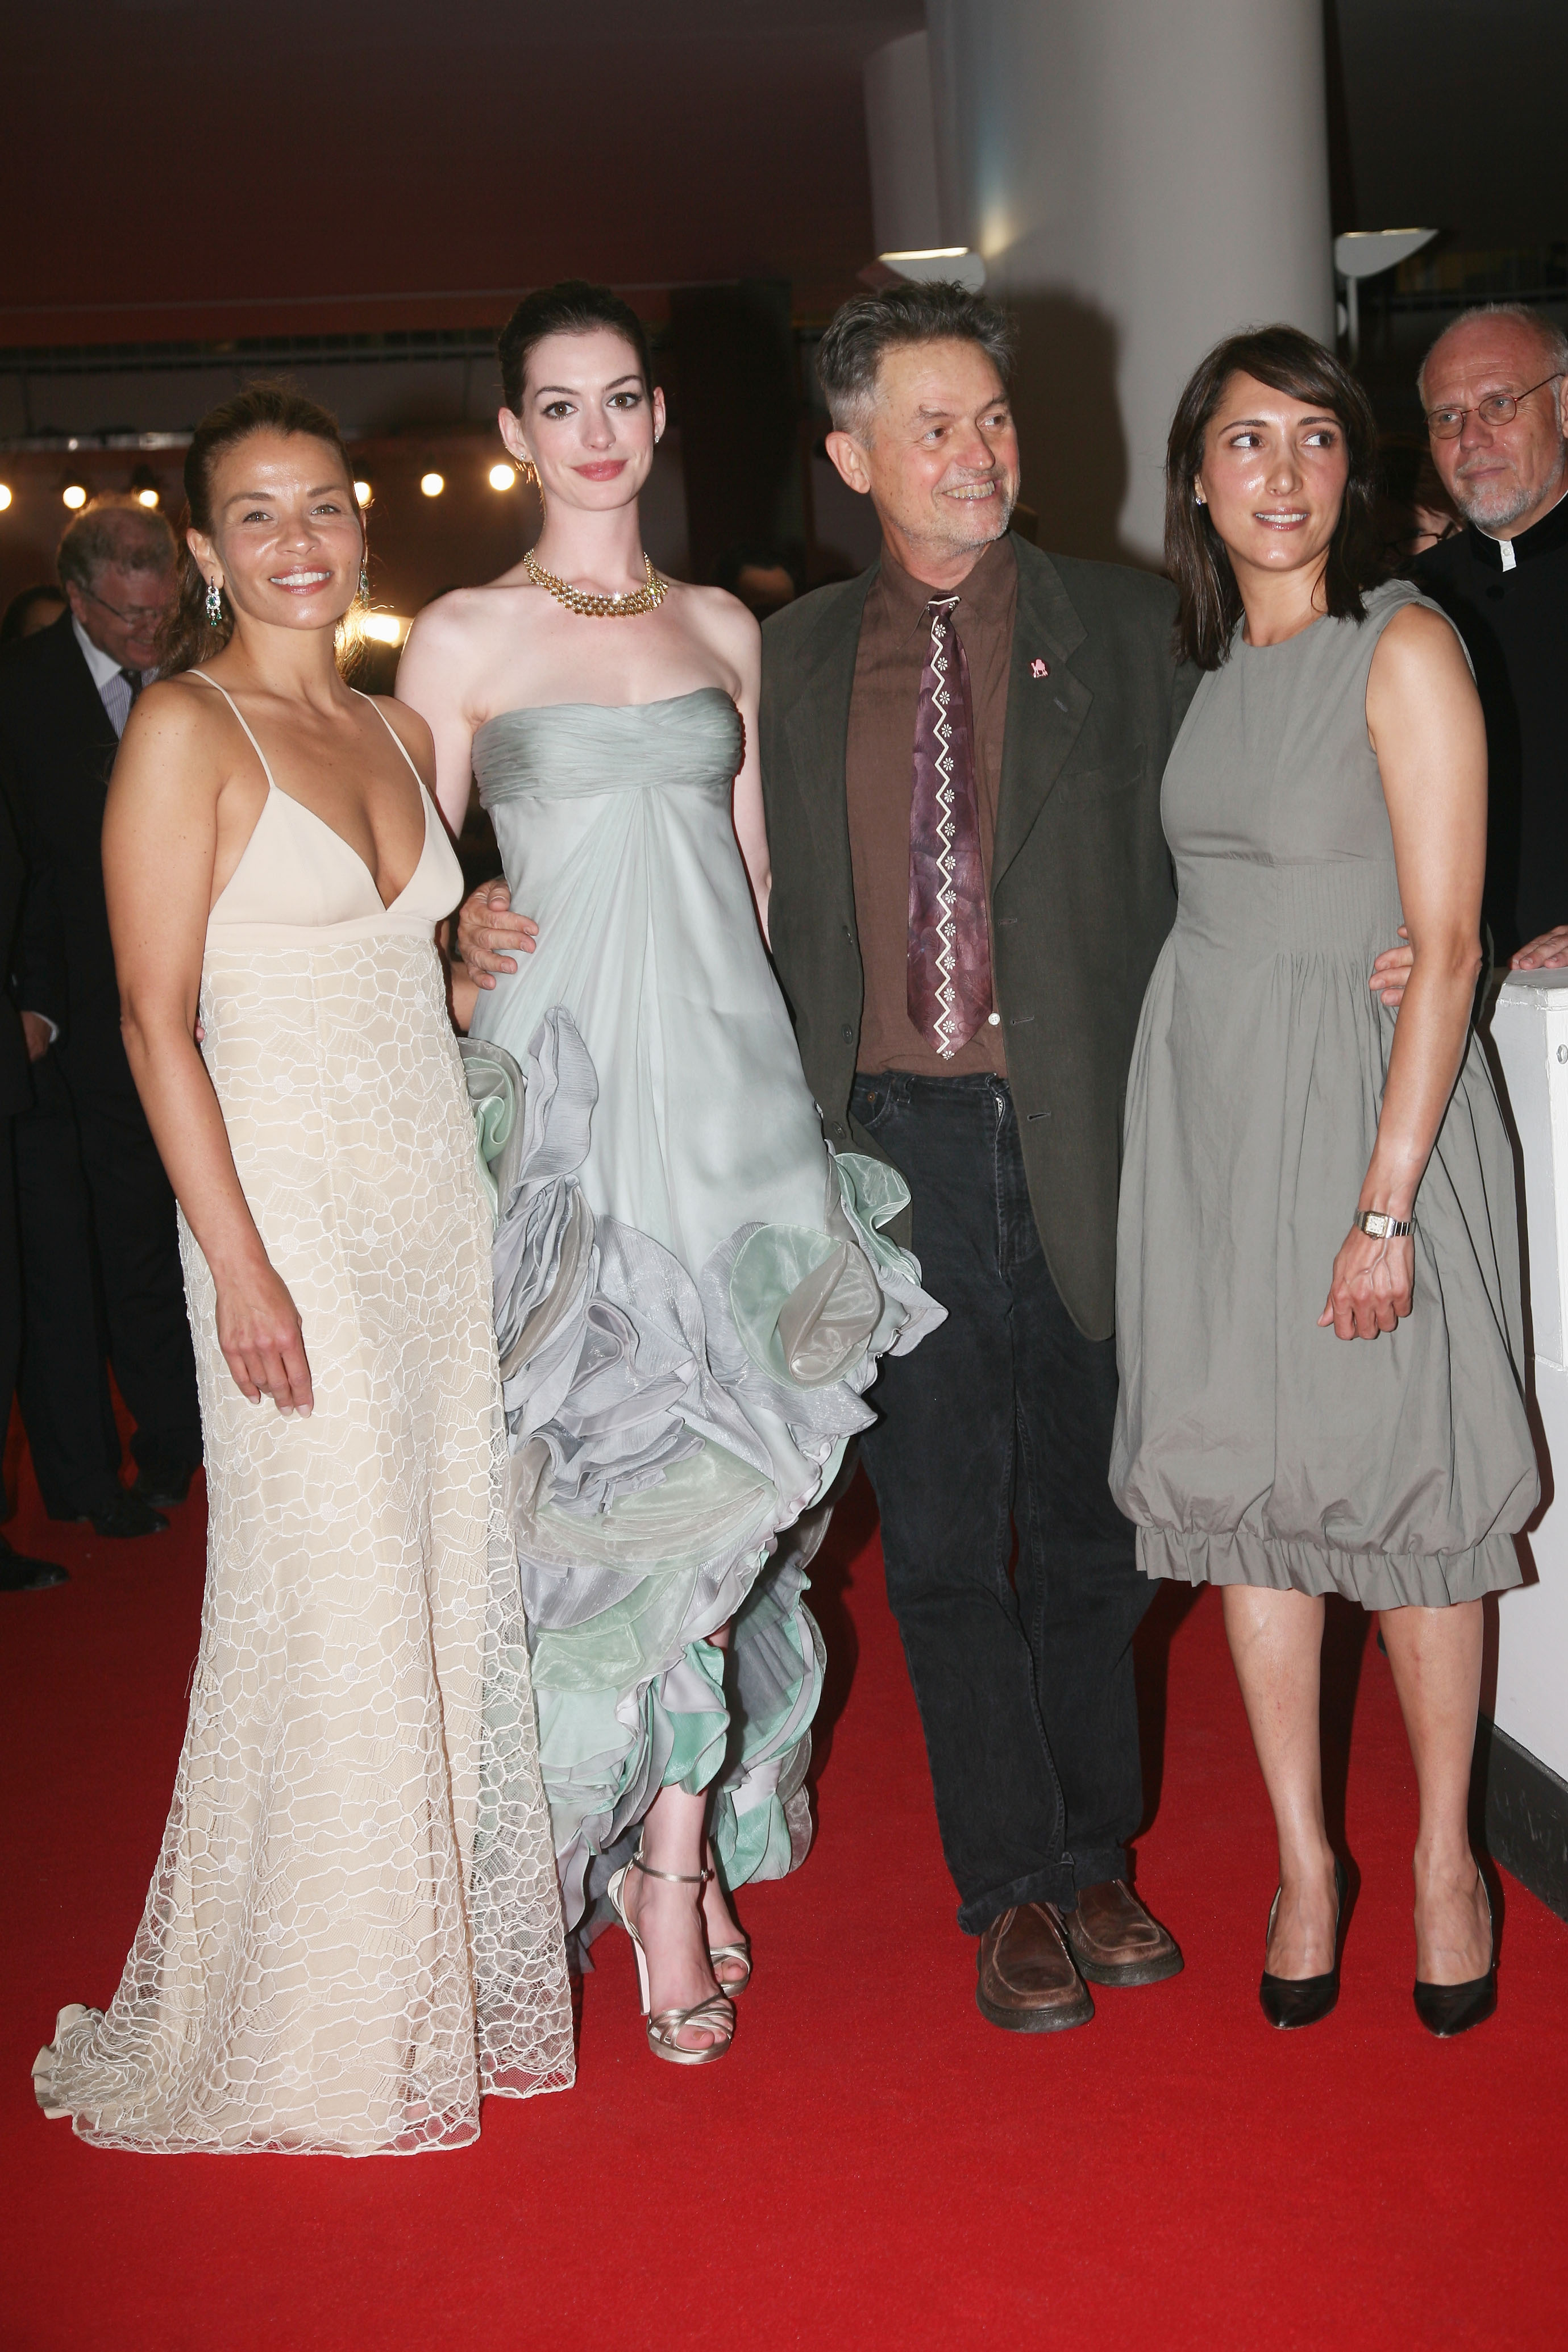 13600_Anne_Hathaway-Rachel_Getting_Married_premiere_during_the_65th_Venice_Film_Festival-36_122_860lo.jpg